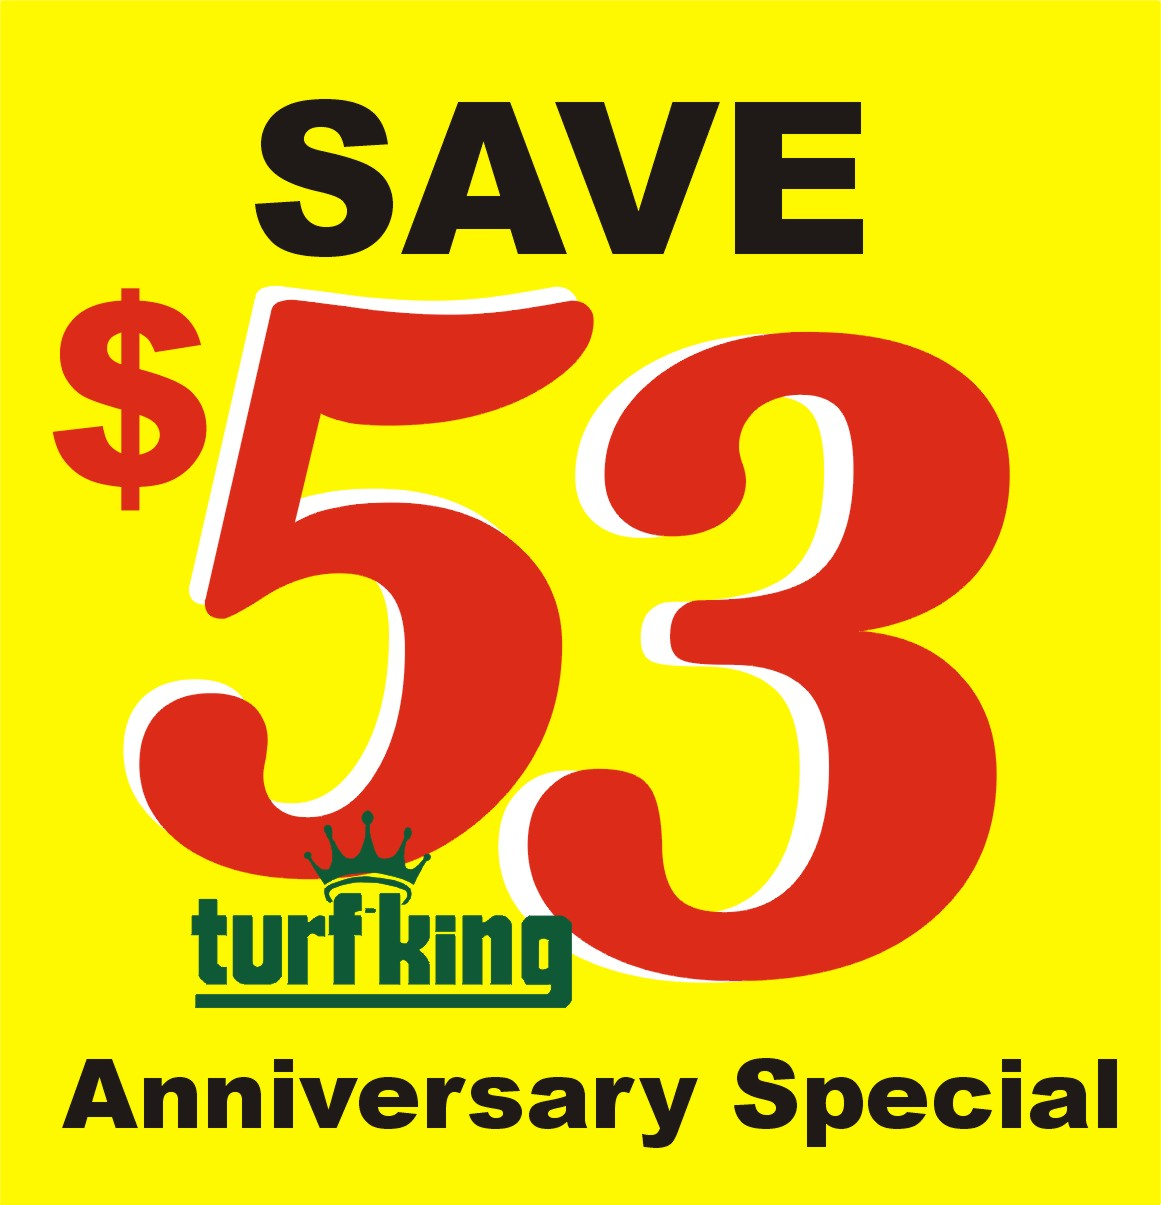 Save $53 on your Turf King Lawn Care Program